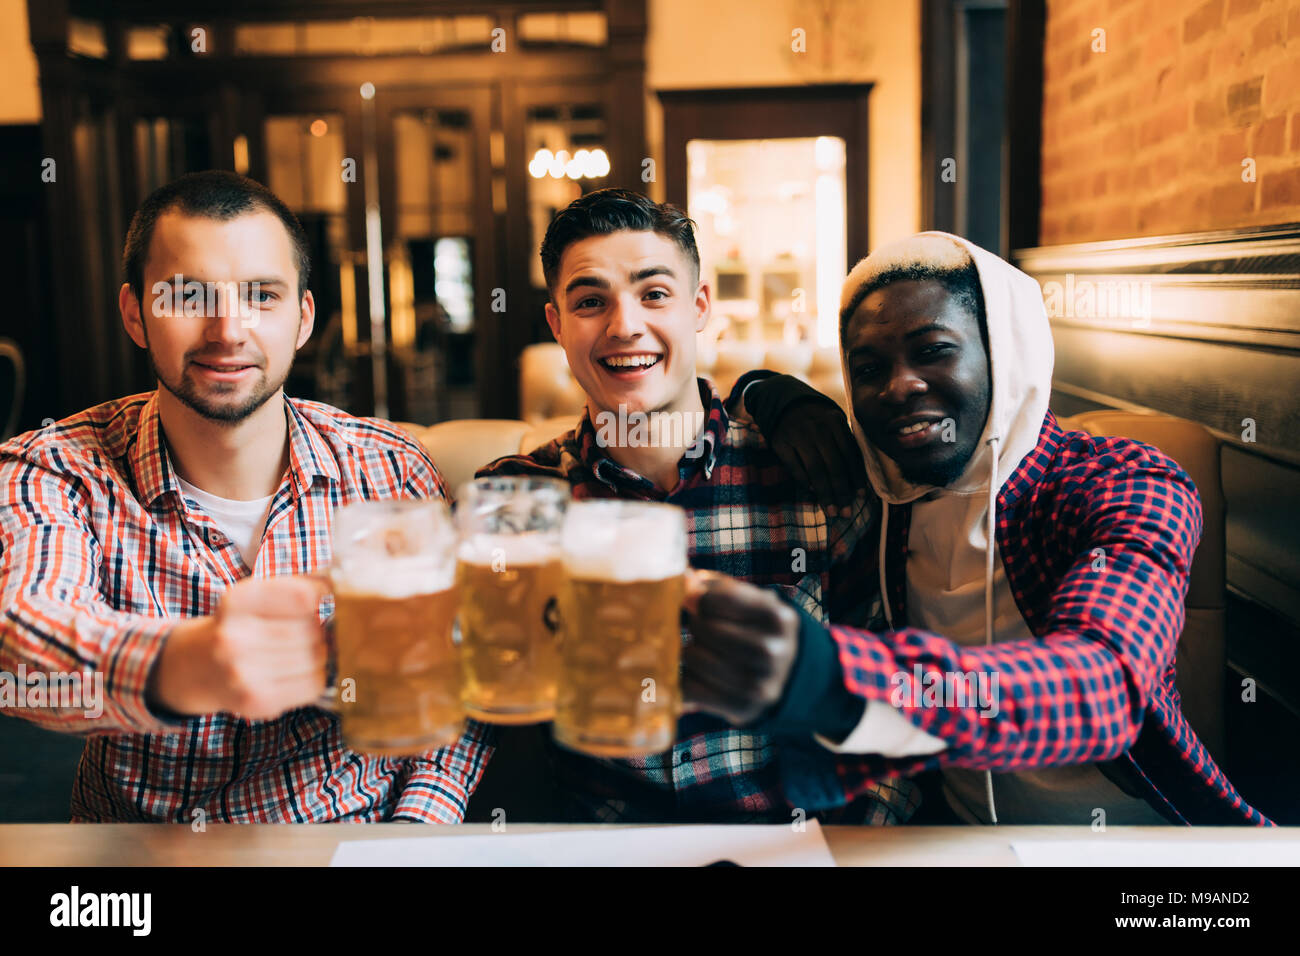 Happy male friends drinking beer and clinking glasses at bar or pub - Stock Image